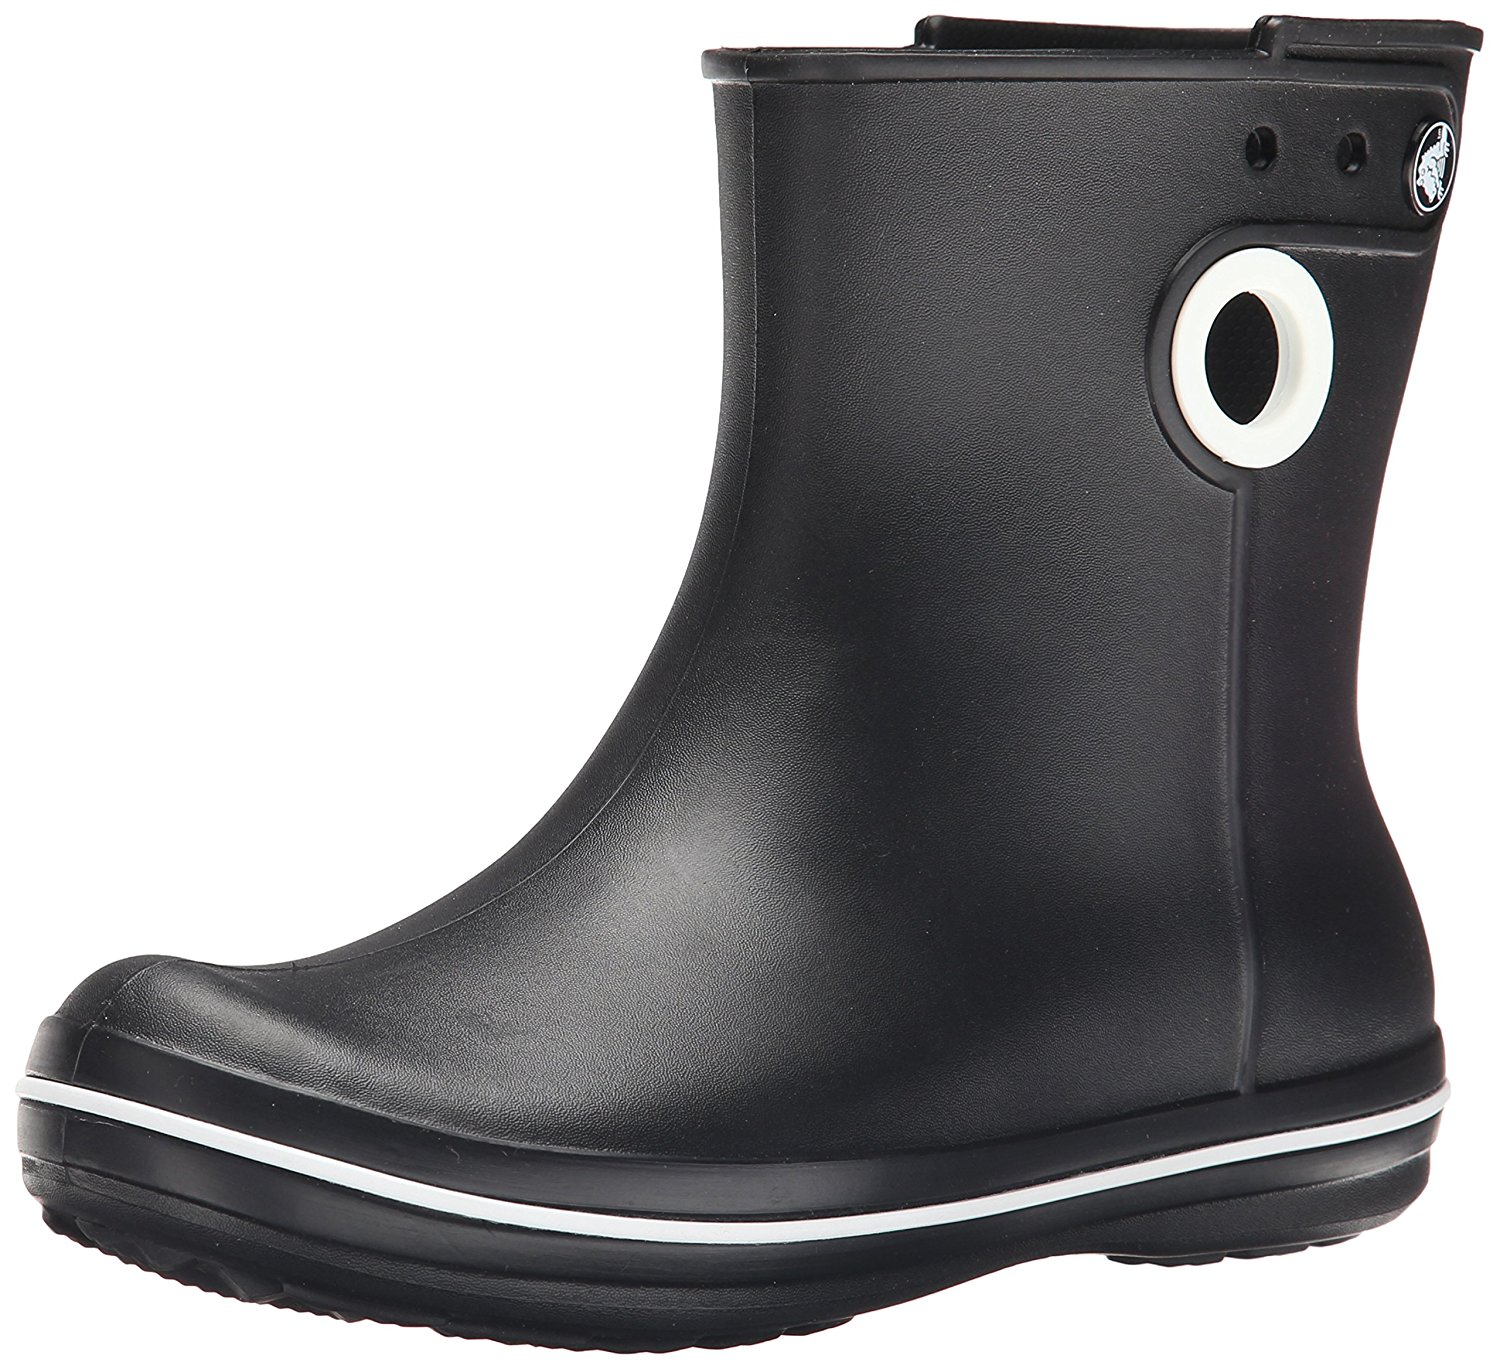 Amazon.com | crocs Women's Jaunt Shorty Boot, Black, 7 M US | Rain Footwear